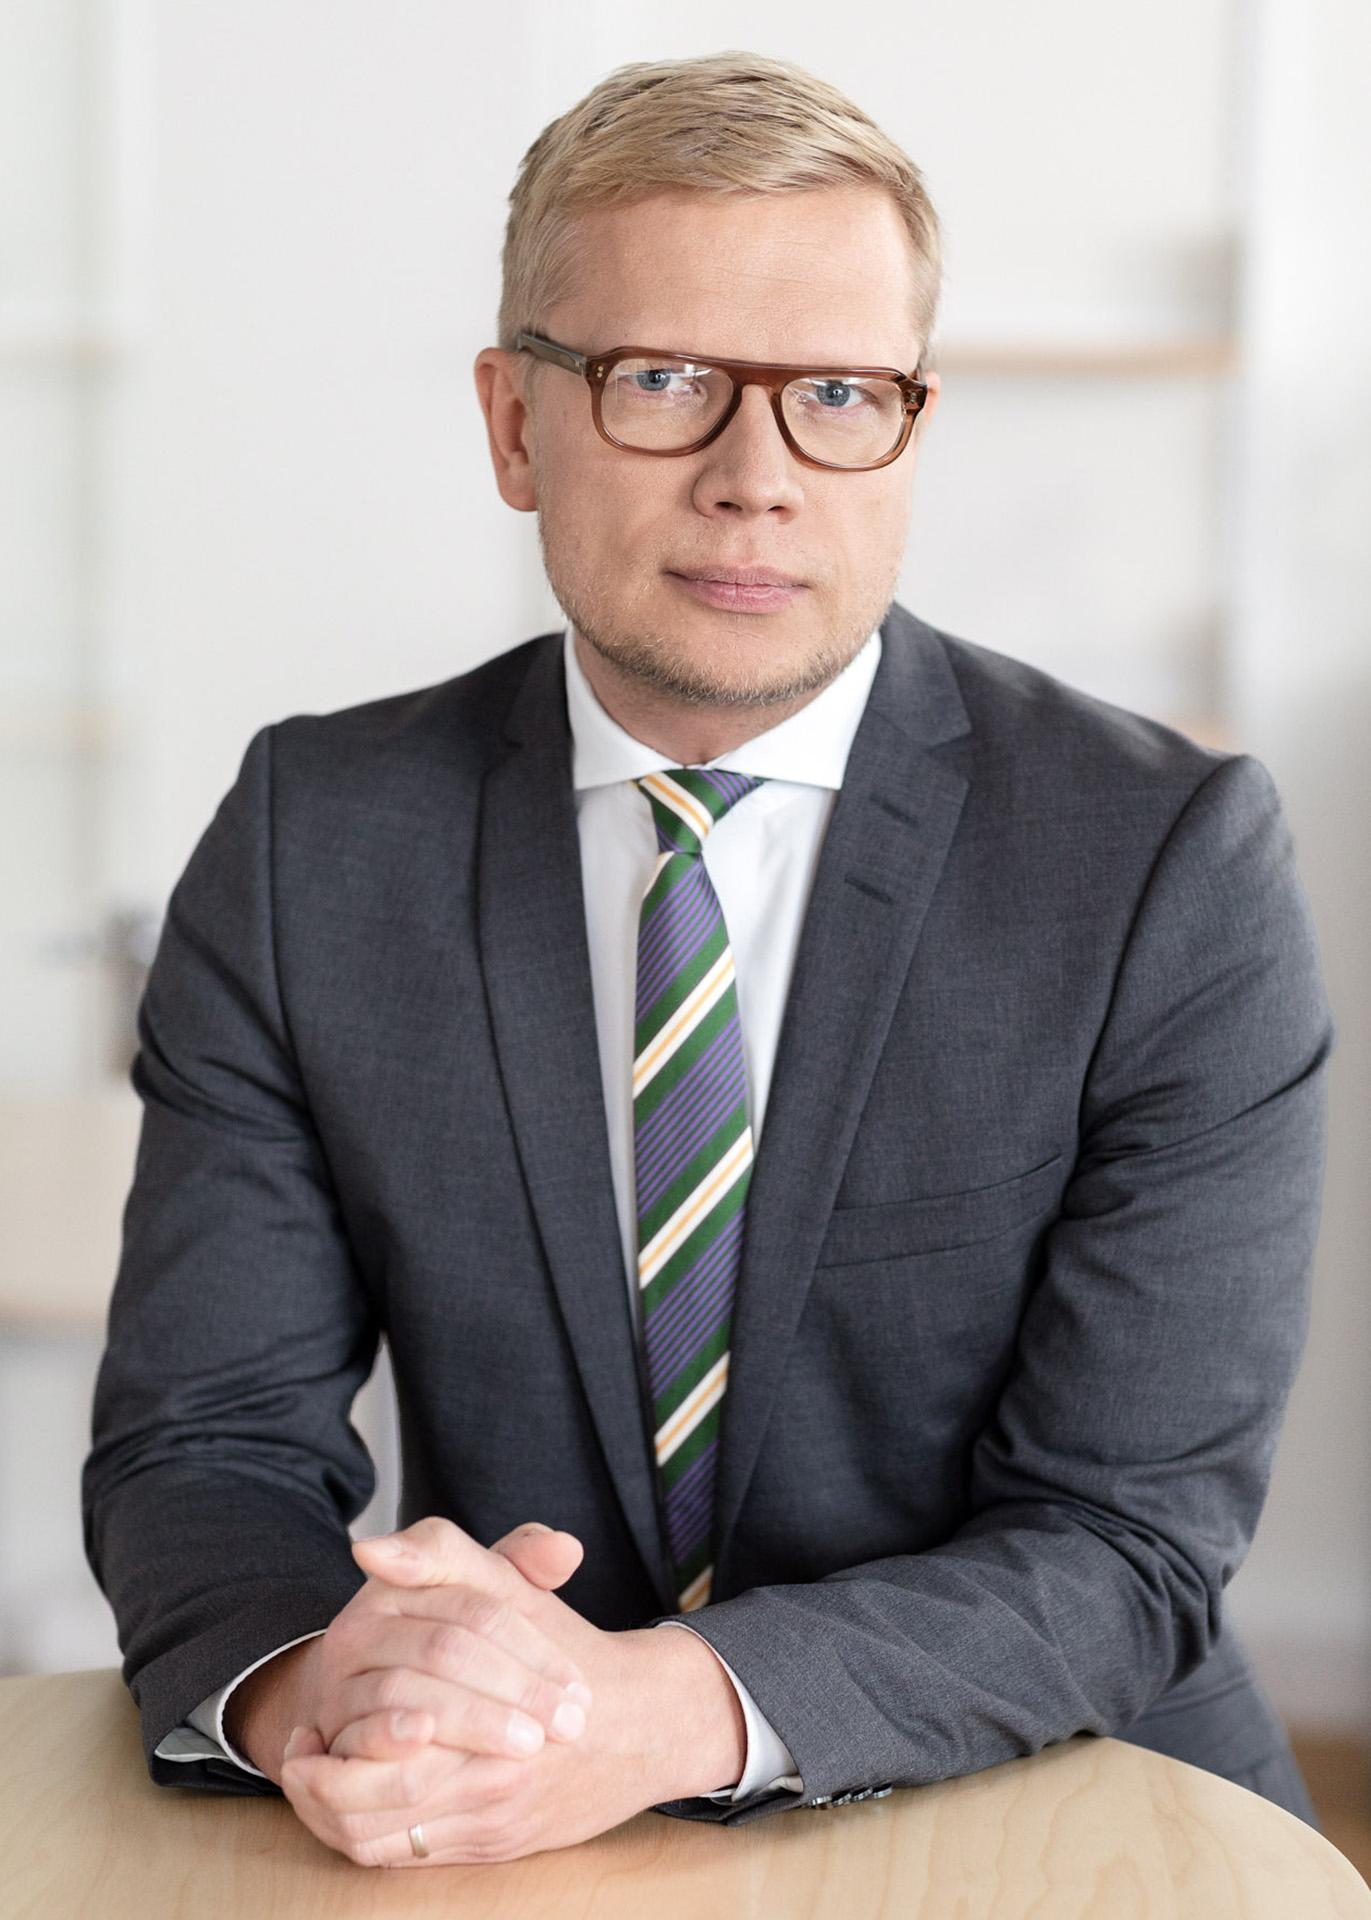 Jari Matero from Finnfund